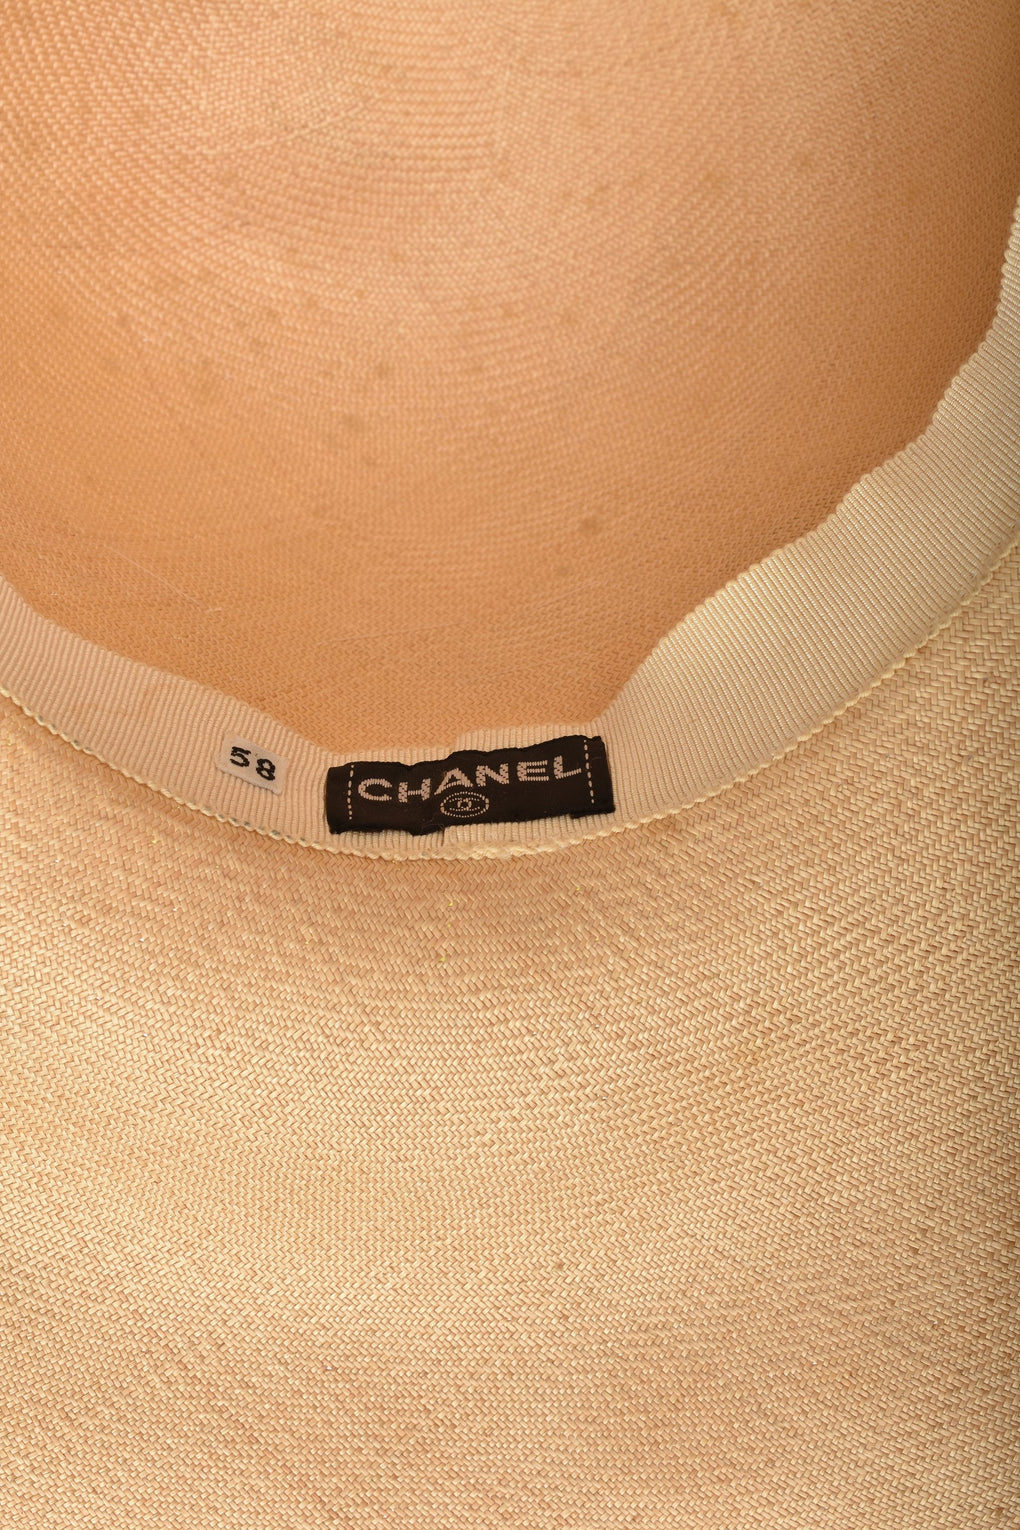 CHANEL 90s straw hat